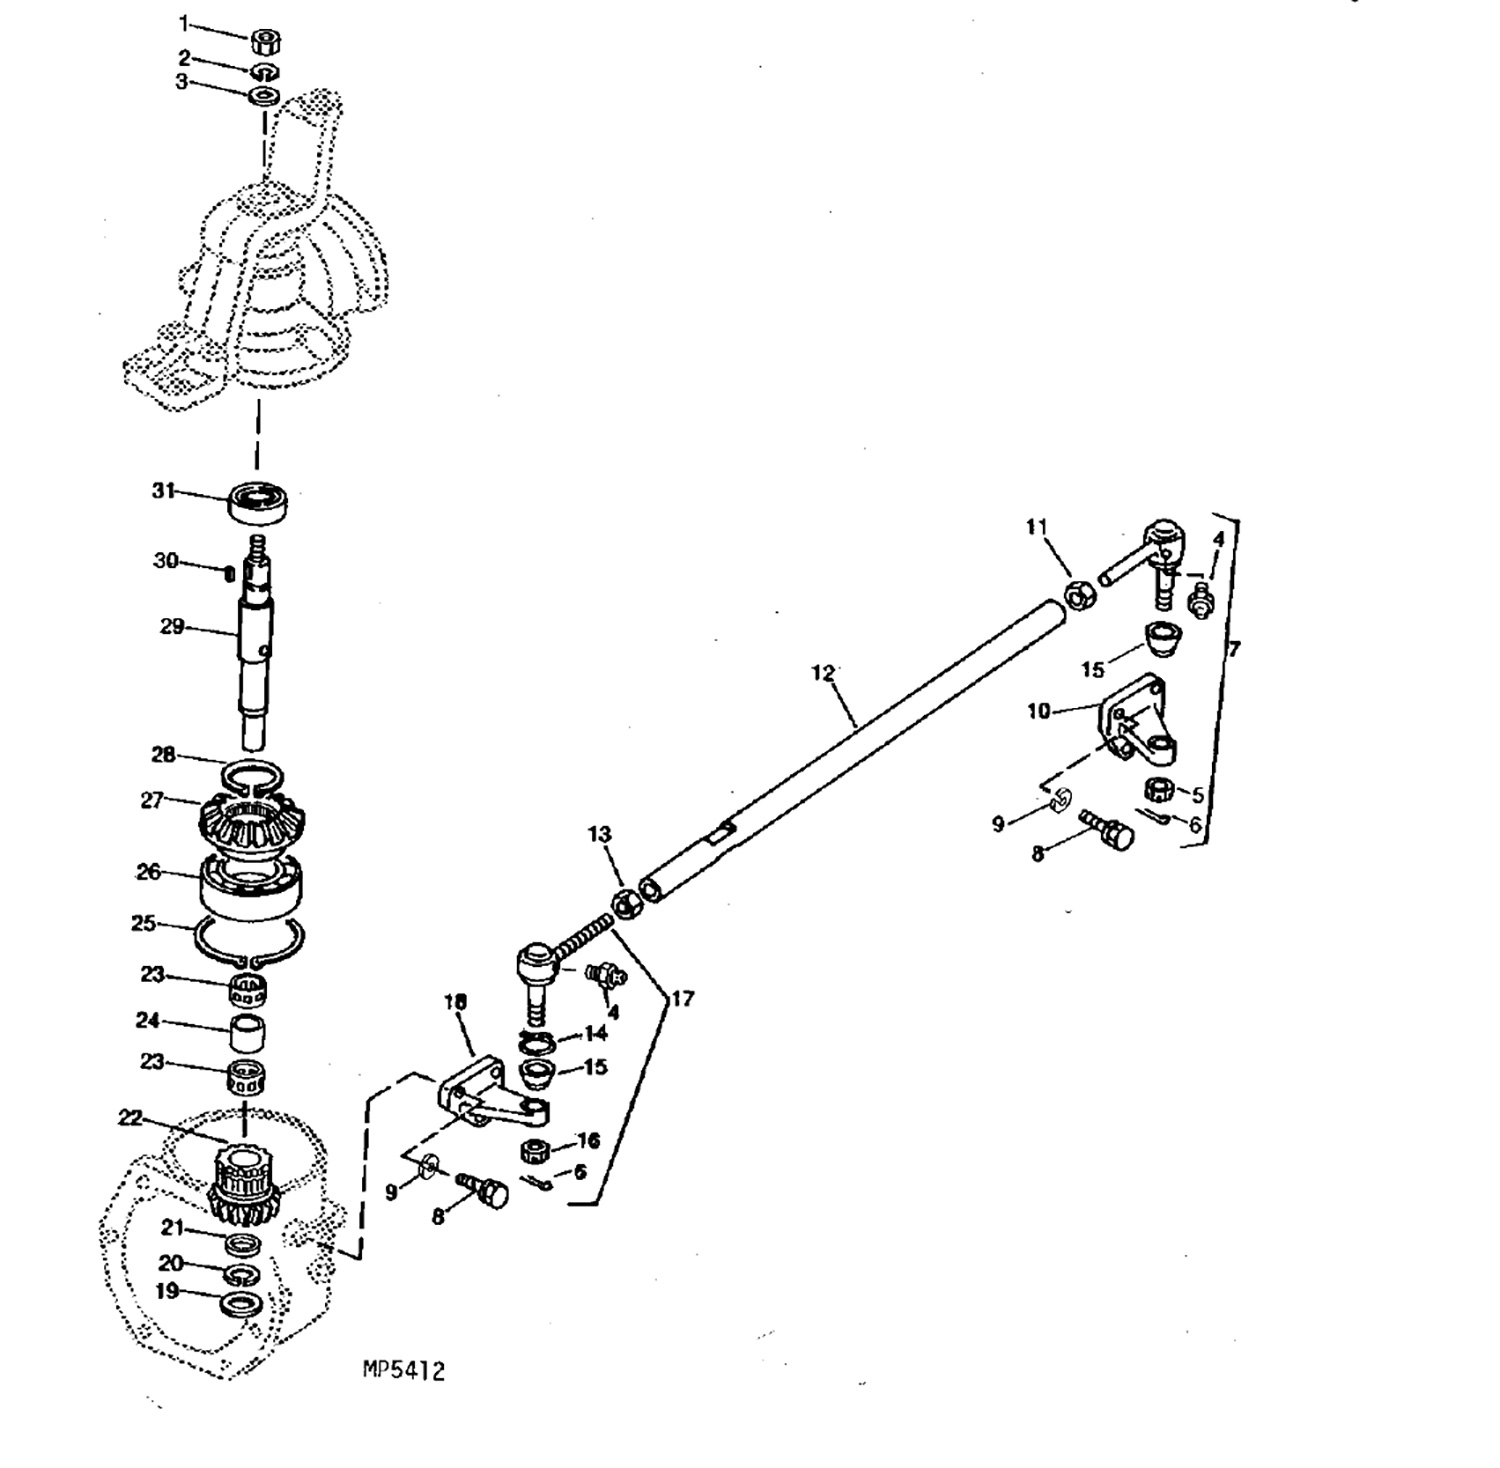 Search Results For John Deere 855 Parts Diagram